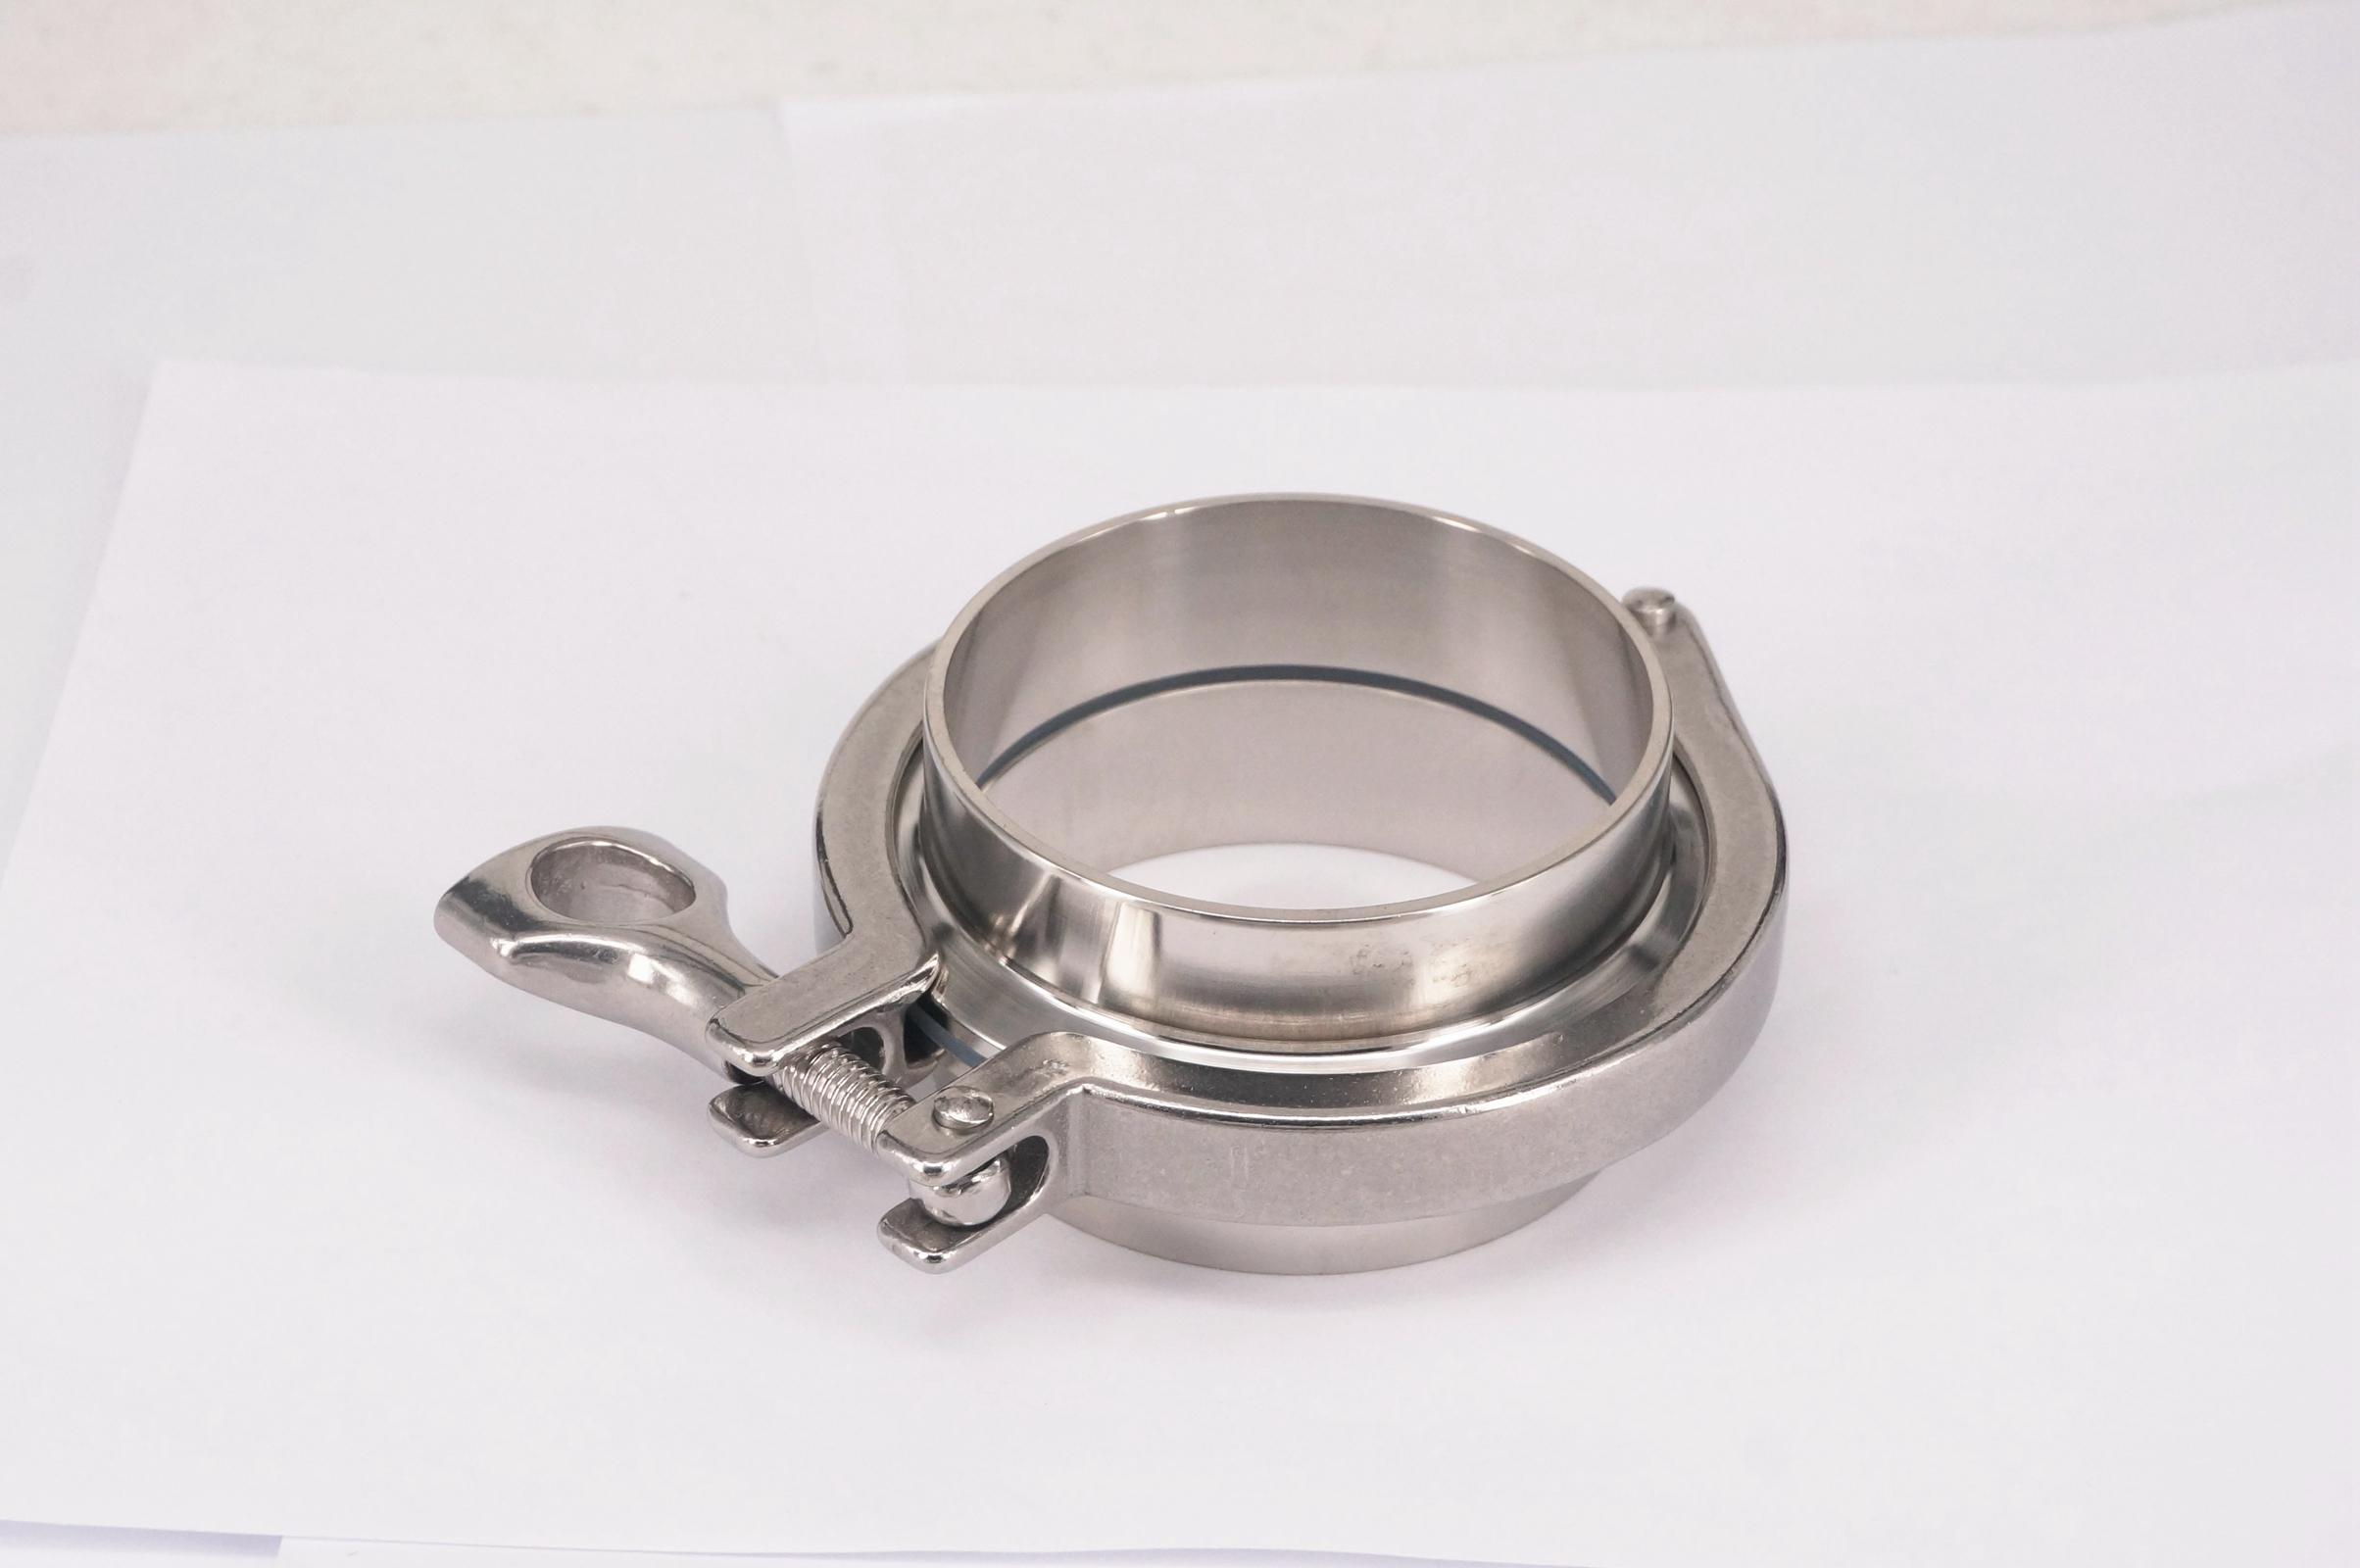 A Set 76mm 3 O/D Sanitary Tri Clamp Weld Ferrule + Tri Clamp + Silicon Gasket 304 Stainless Steel free shipping 6 154mm sanitary tri clamp weld ferrule tri clamp silicon gasket union set 304 stainless steel for homebrew